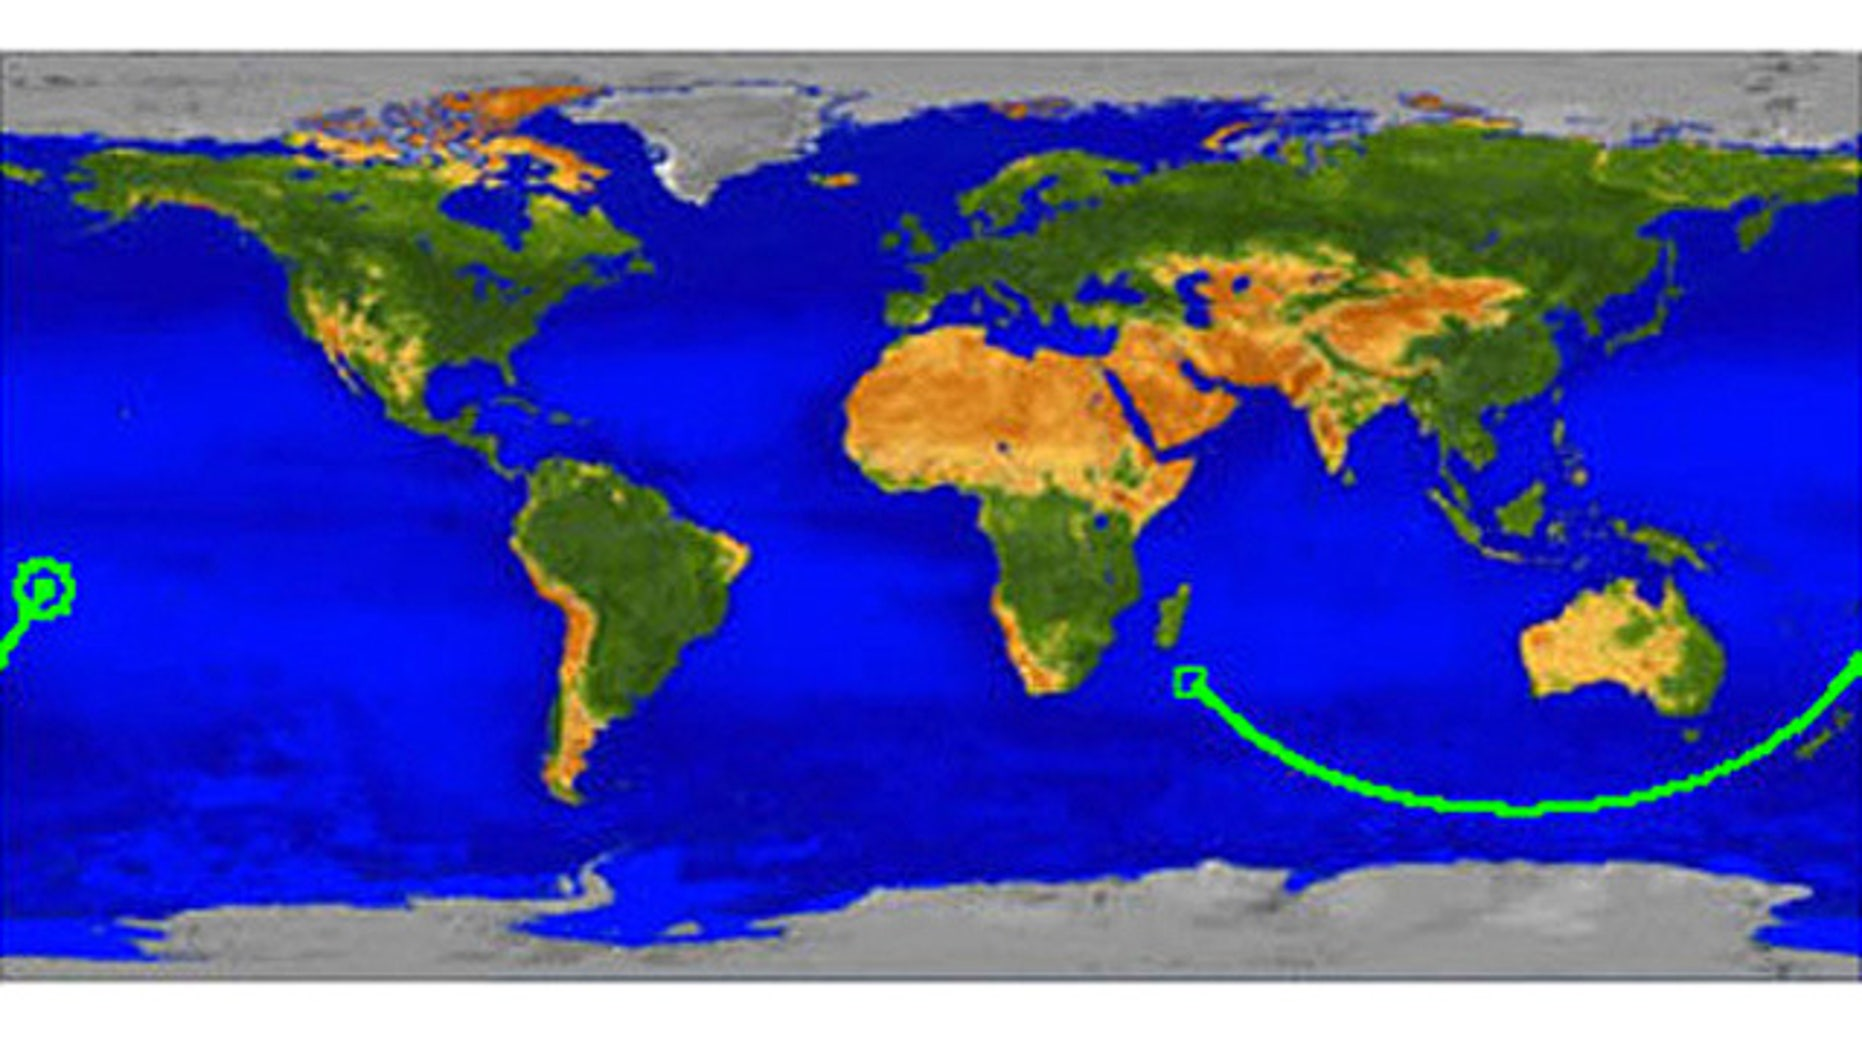 This map shows the ground track for UARS beginning in the Indian Ocean off the coast of Africa at 0330 GMT and ending at atmospheric interface over the Pacific Ocean at 0401 GMT. In this map, the satellite's path is shown beginning in the Indian Ocean off the coast of Africa at 0330 GMT and ending at atmospheric interface over the Pacific Ocean at 0401 GMT.